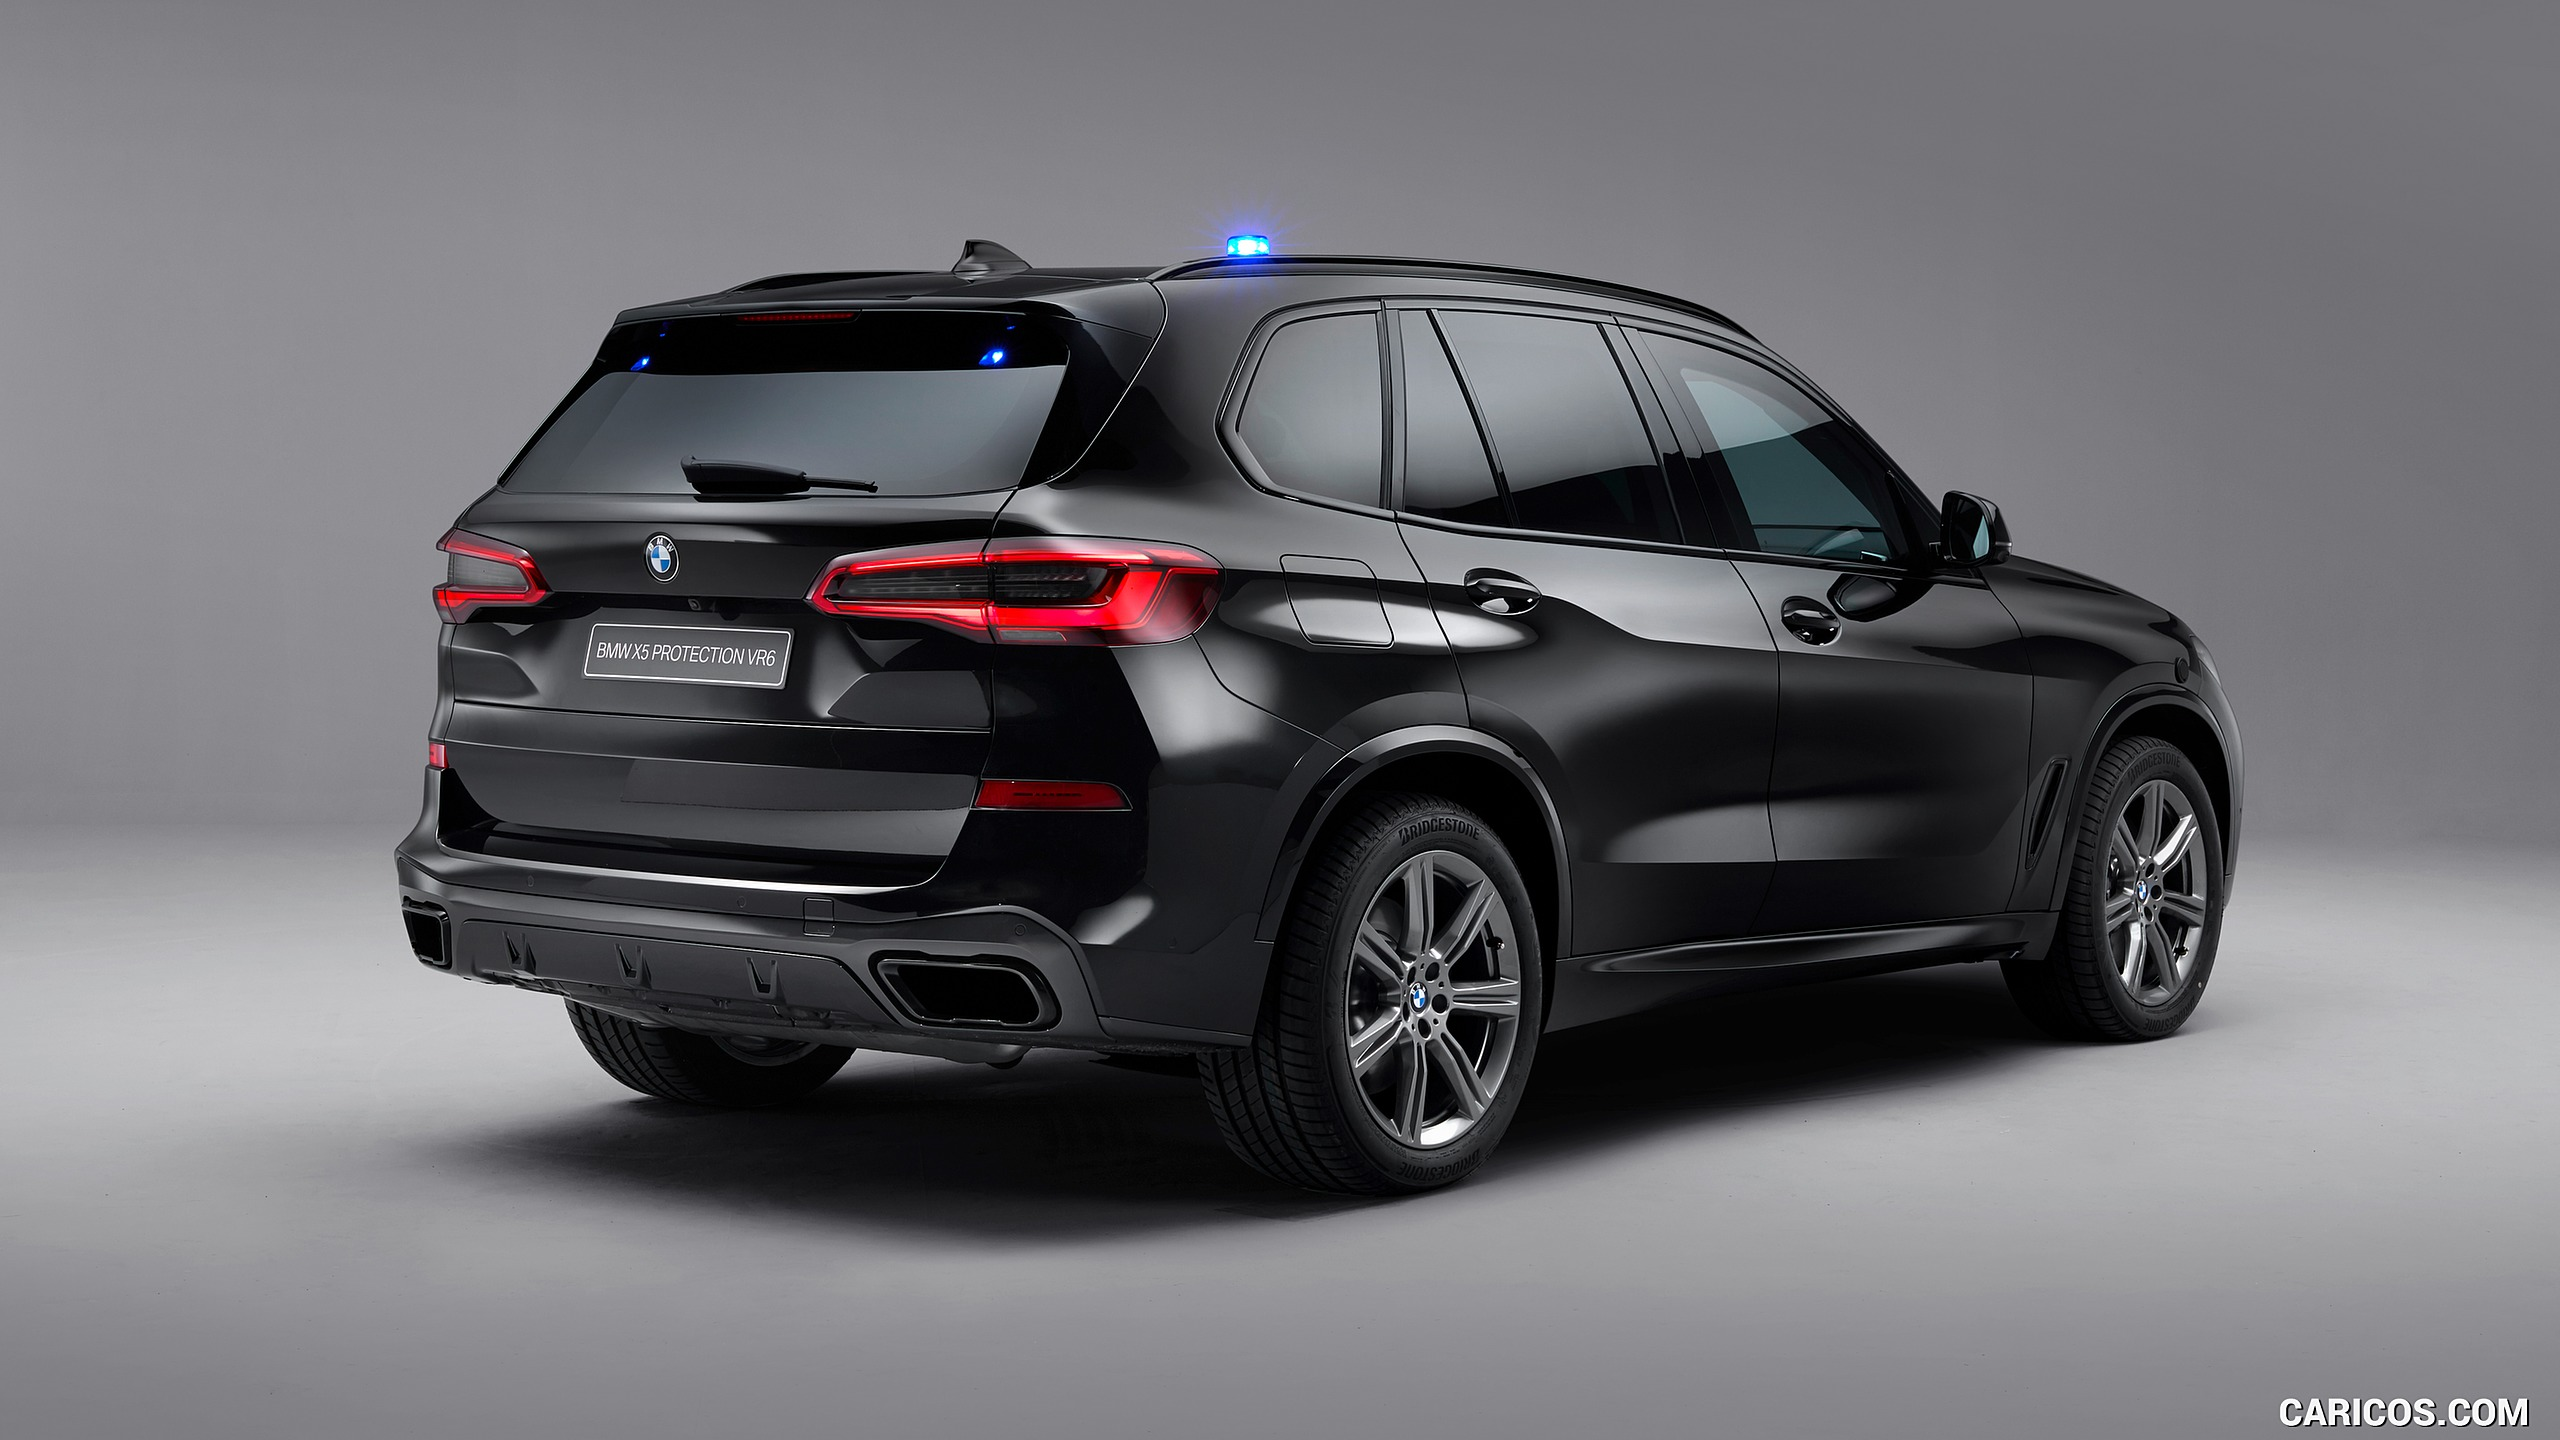 2020 BMW X5 Protection VR6 Armored Vehicle   Rear Three Quarter 2560x1440